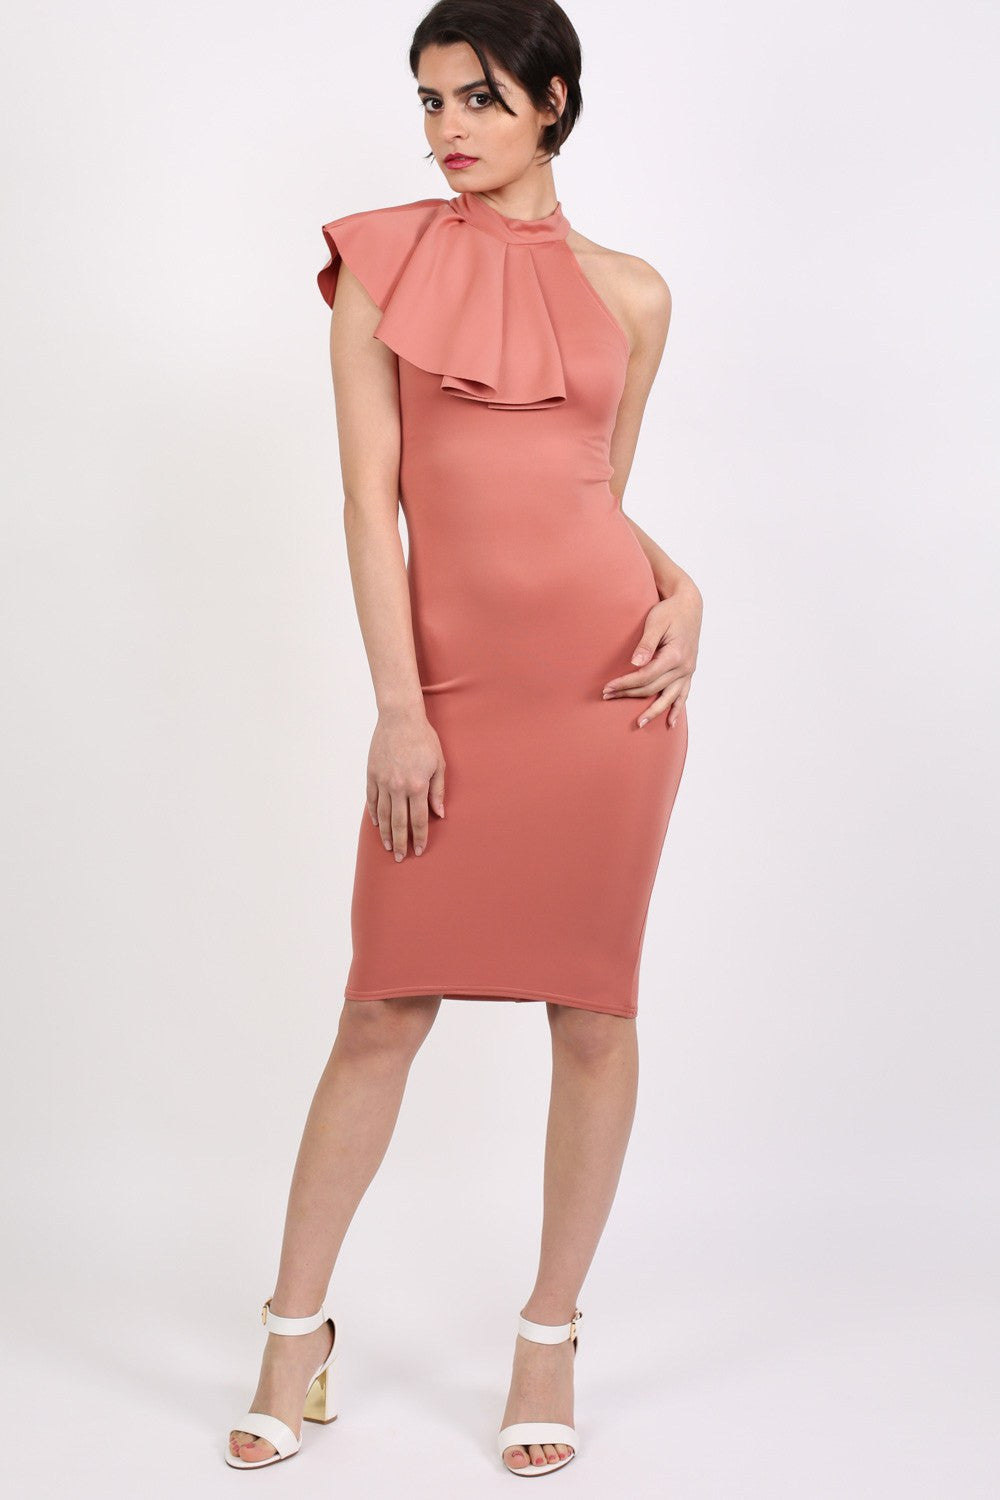 High Neck Frill Detail Bodycon Midi Dress in Coral 1